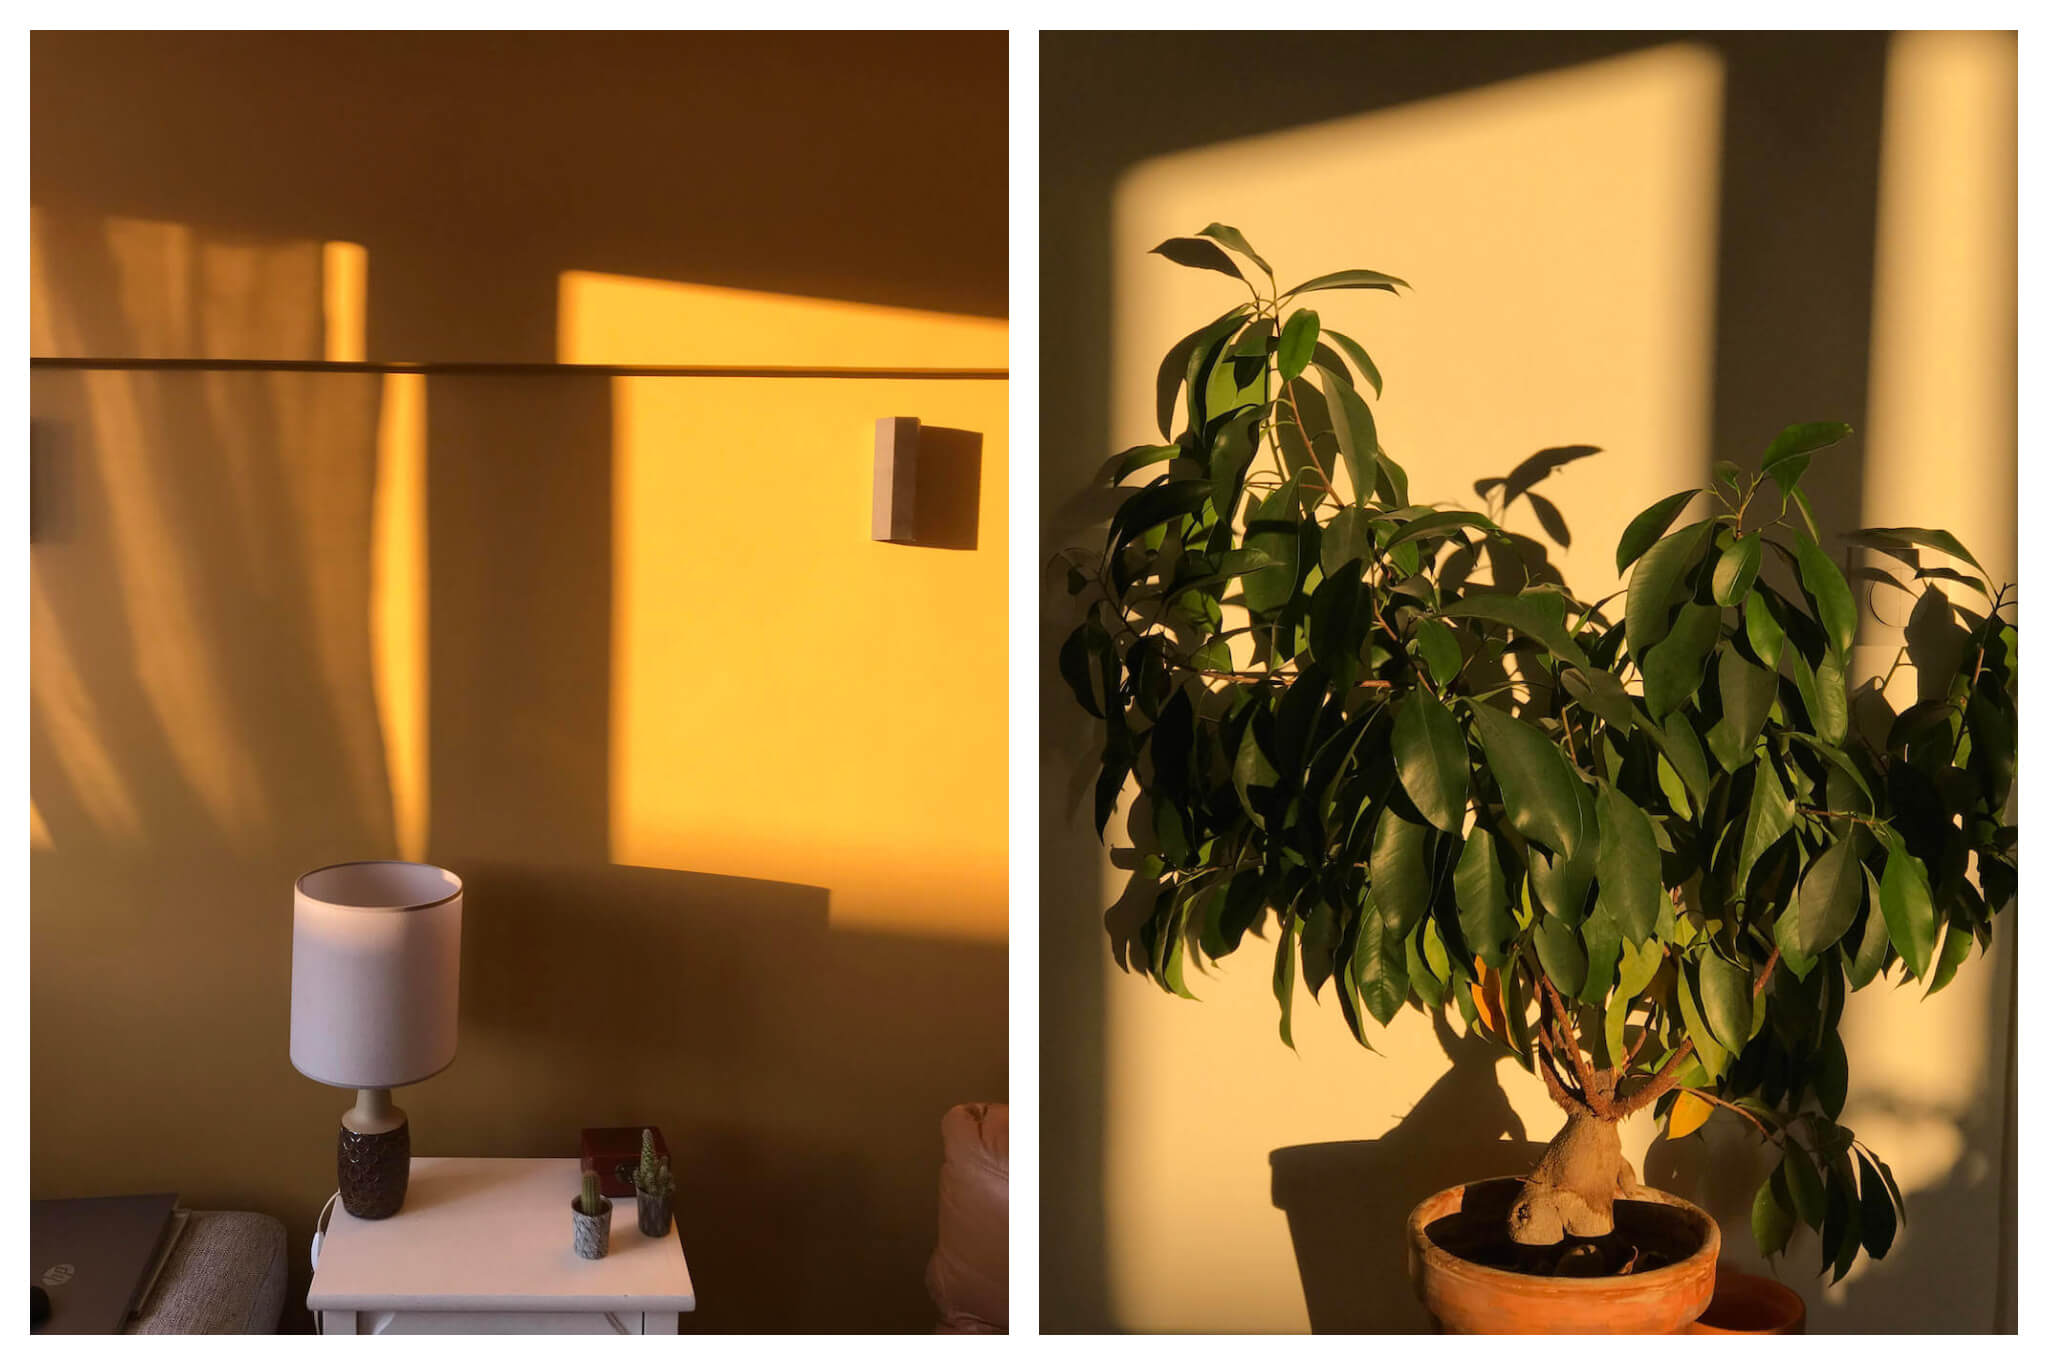 The sunshine casts a light on the walls and a plant in Rooksana's apartment.